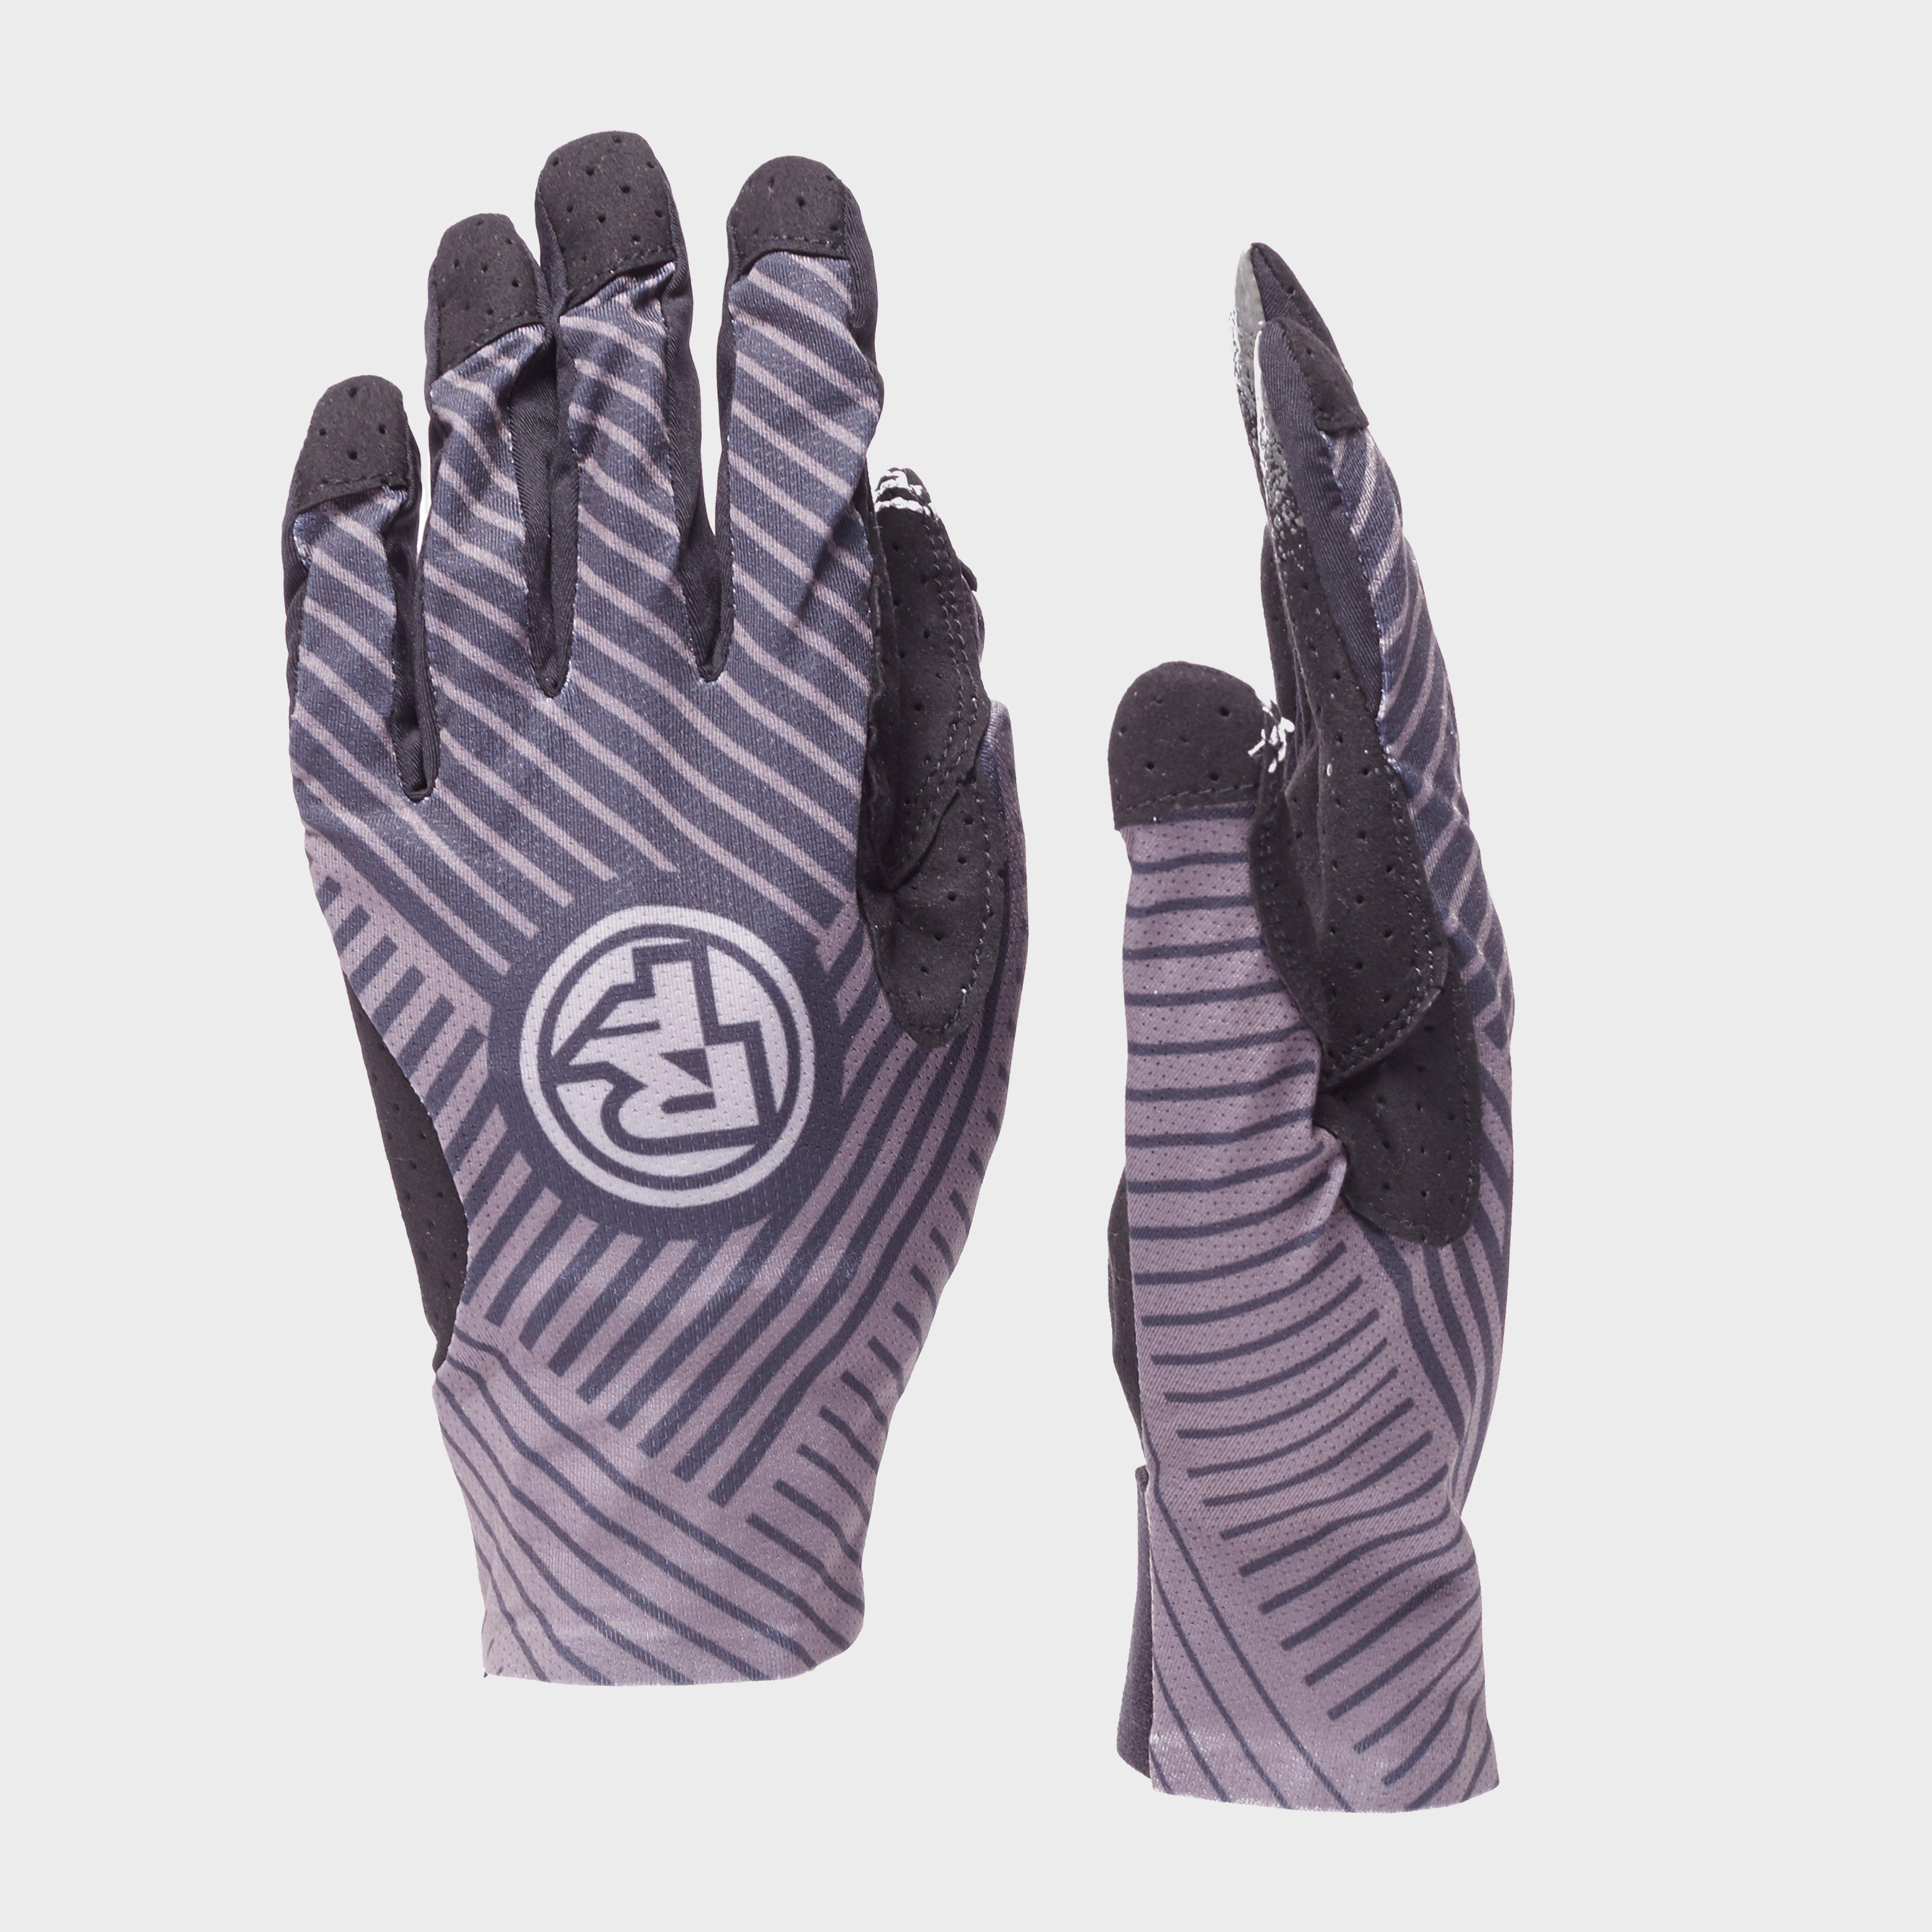 Raceface Raceface Indy Cycling Gloves - Black, Black